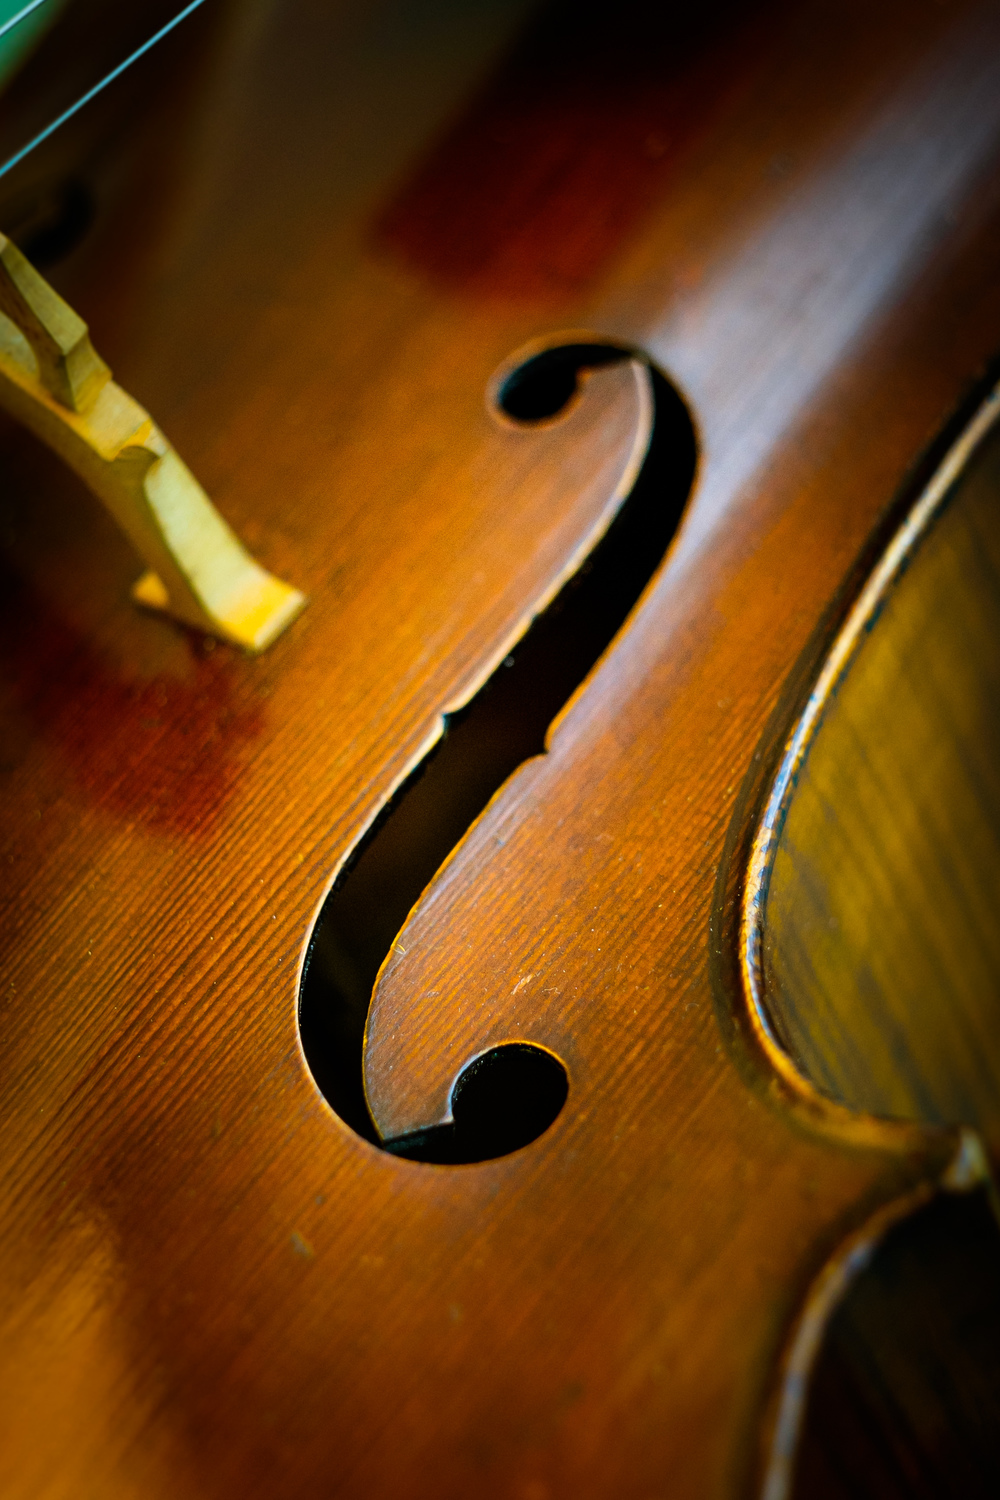 cello-detail-1.jpg